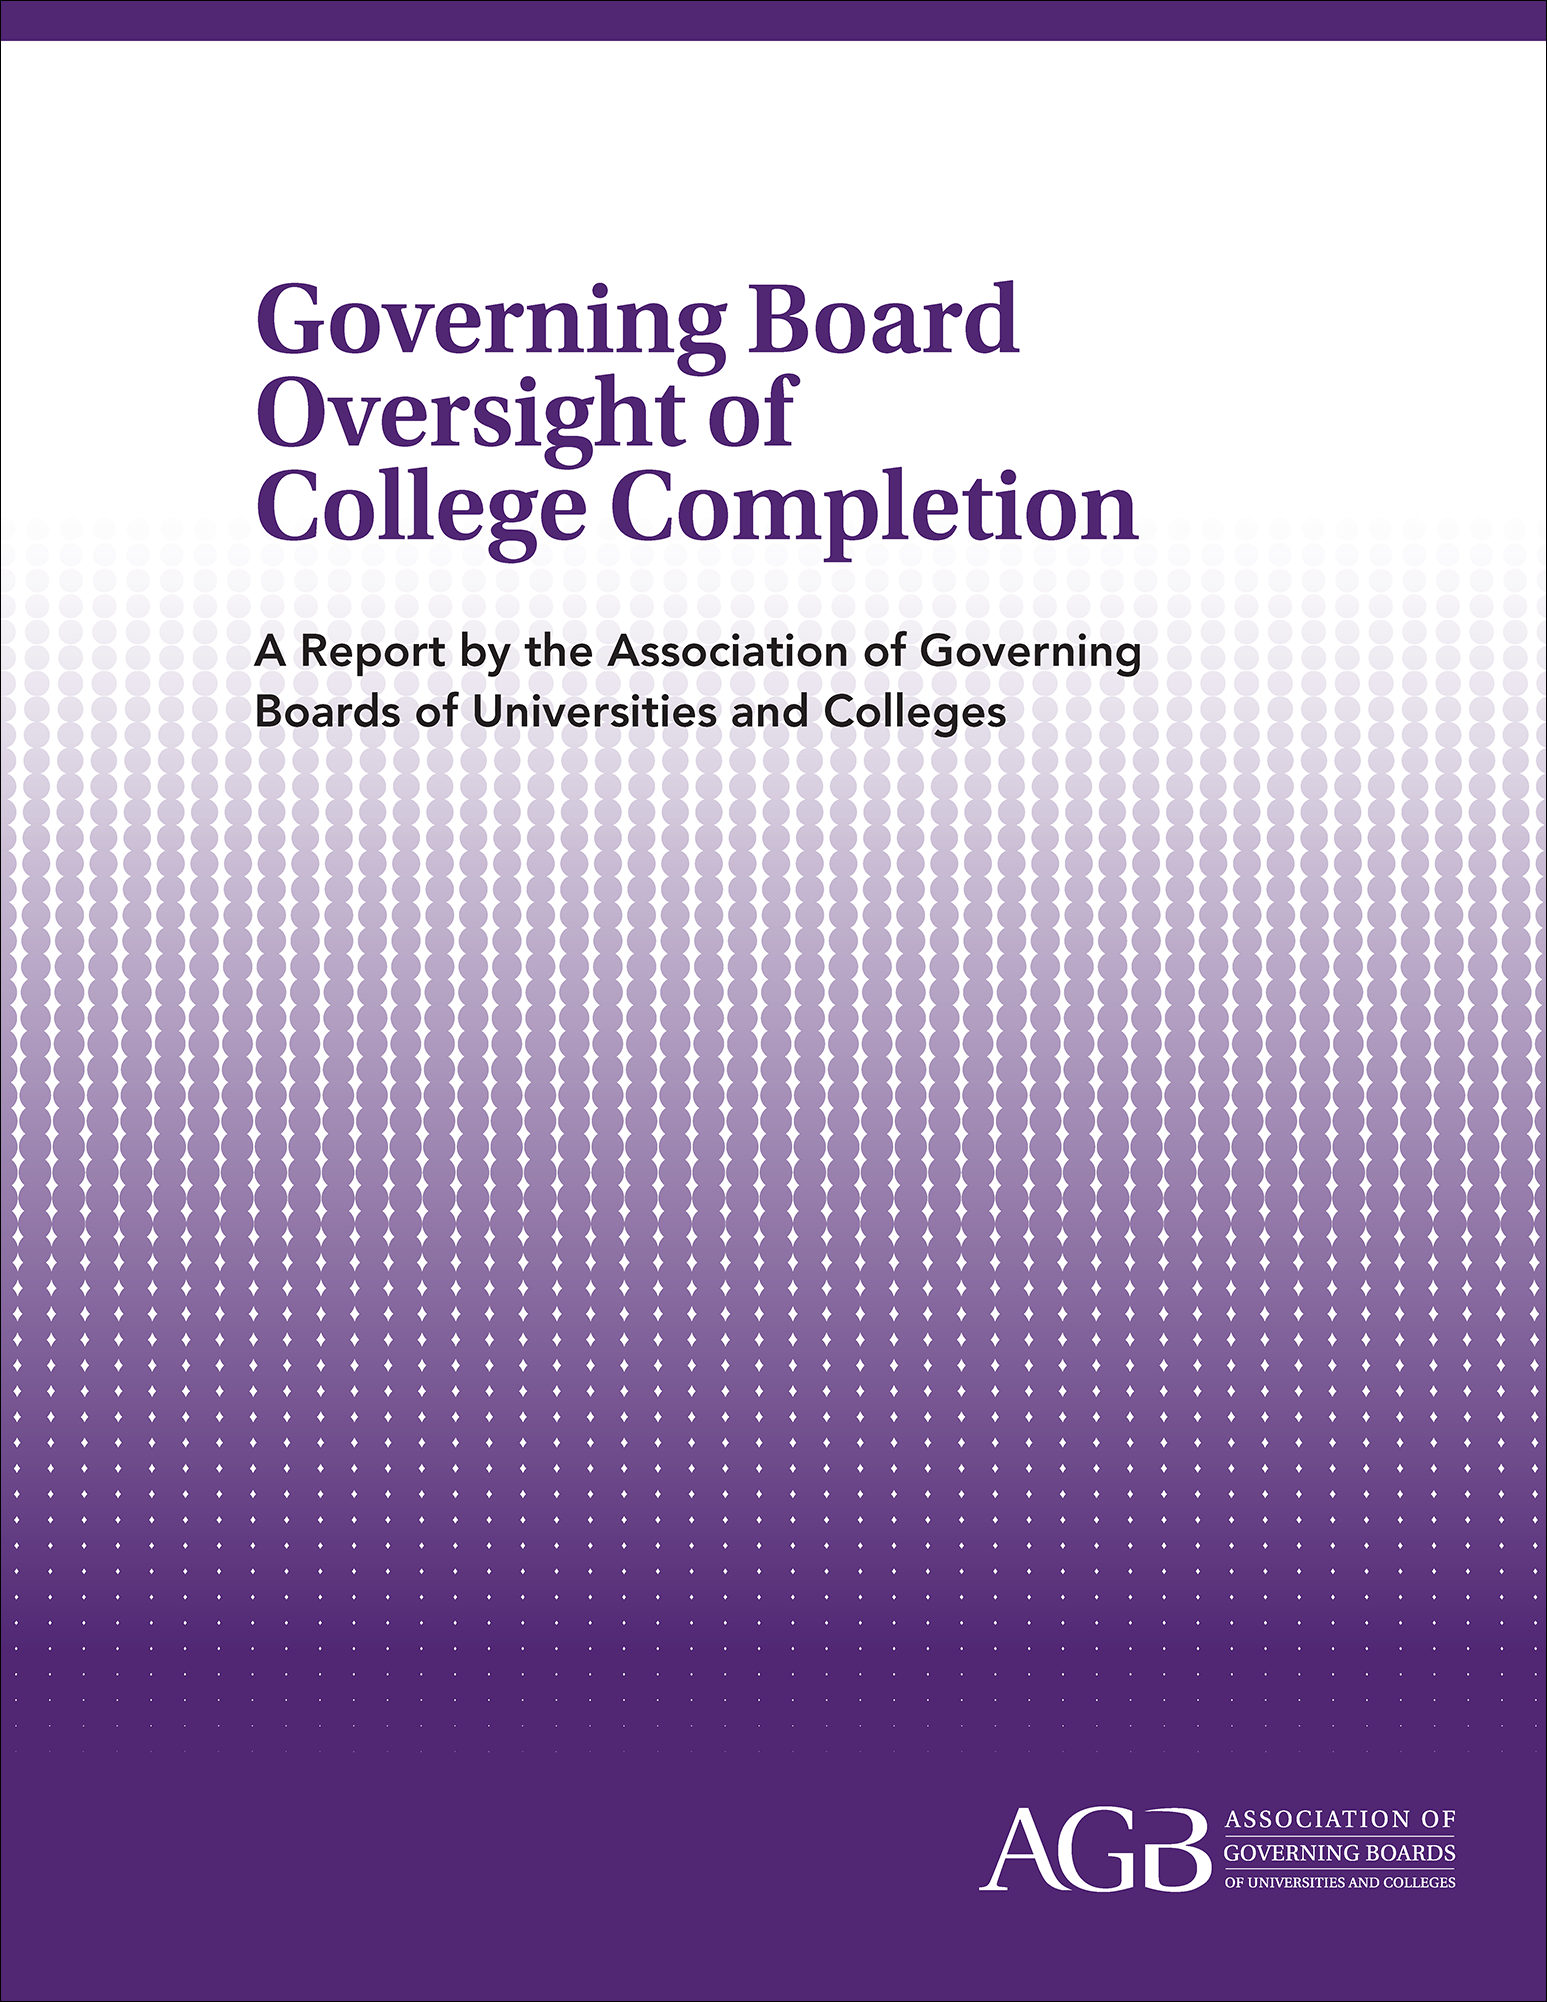 Governing Board Oversight of College Completion